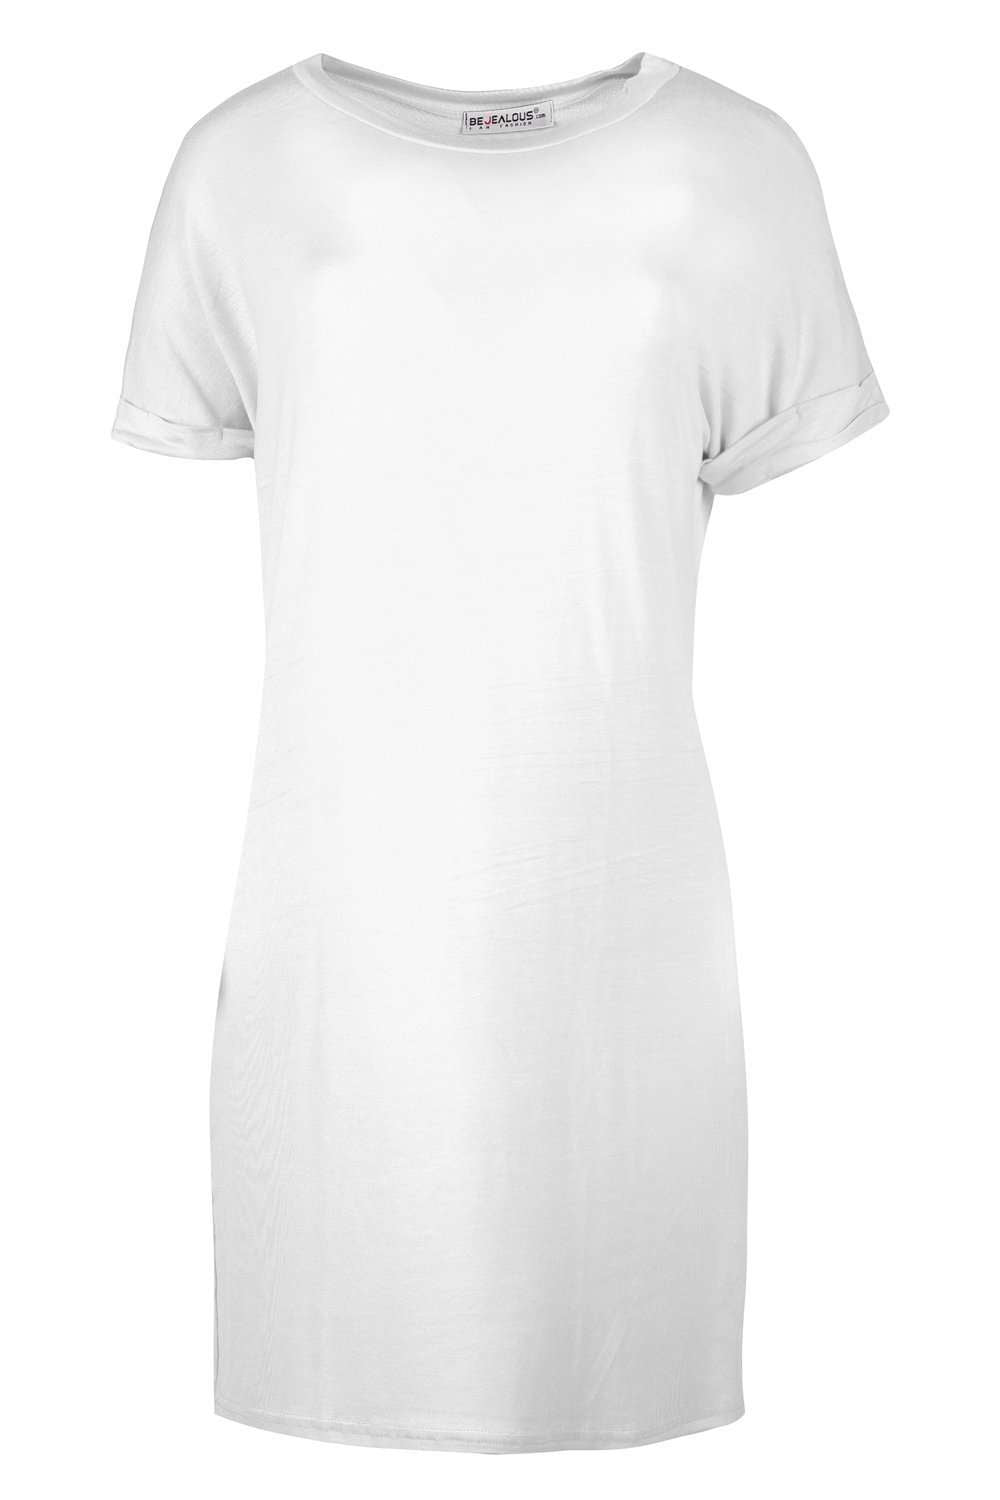 Kammie Roll Sleeve Oversized Basic Tshirt Dress - bejealous-com